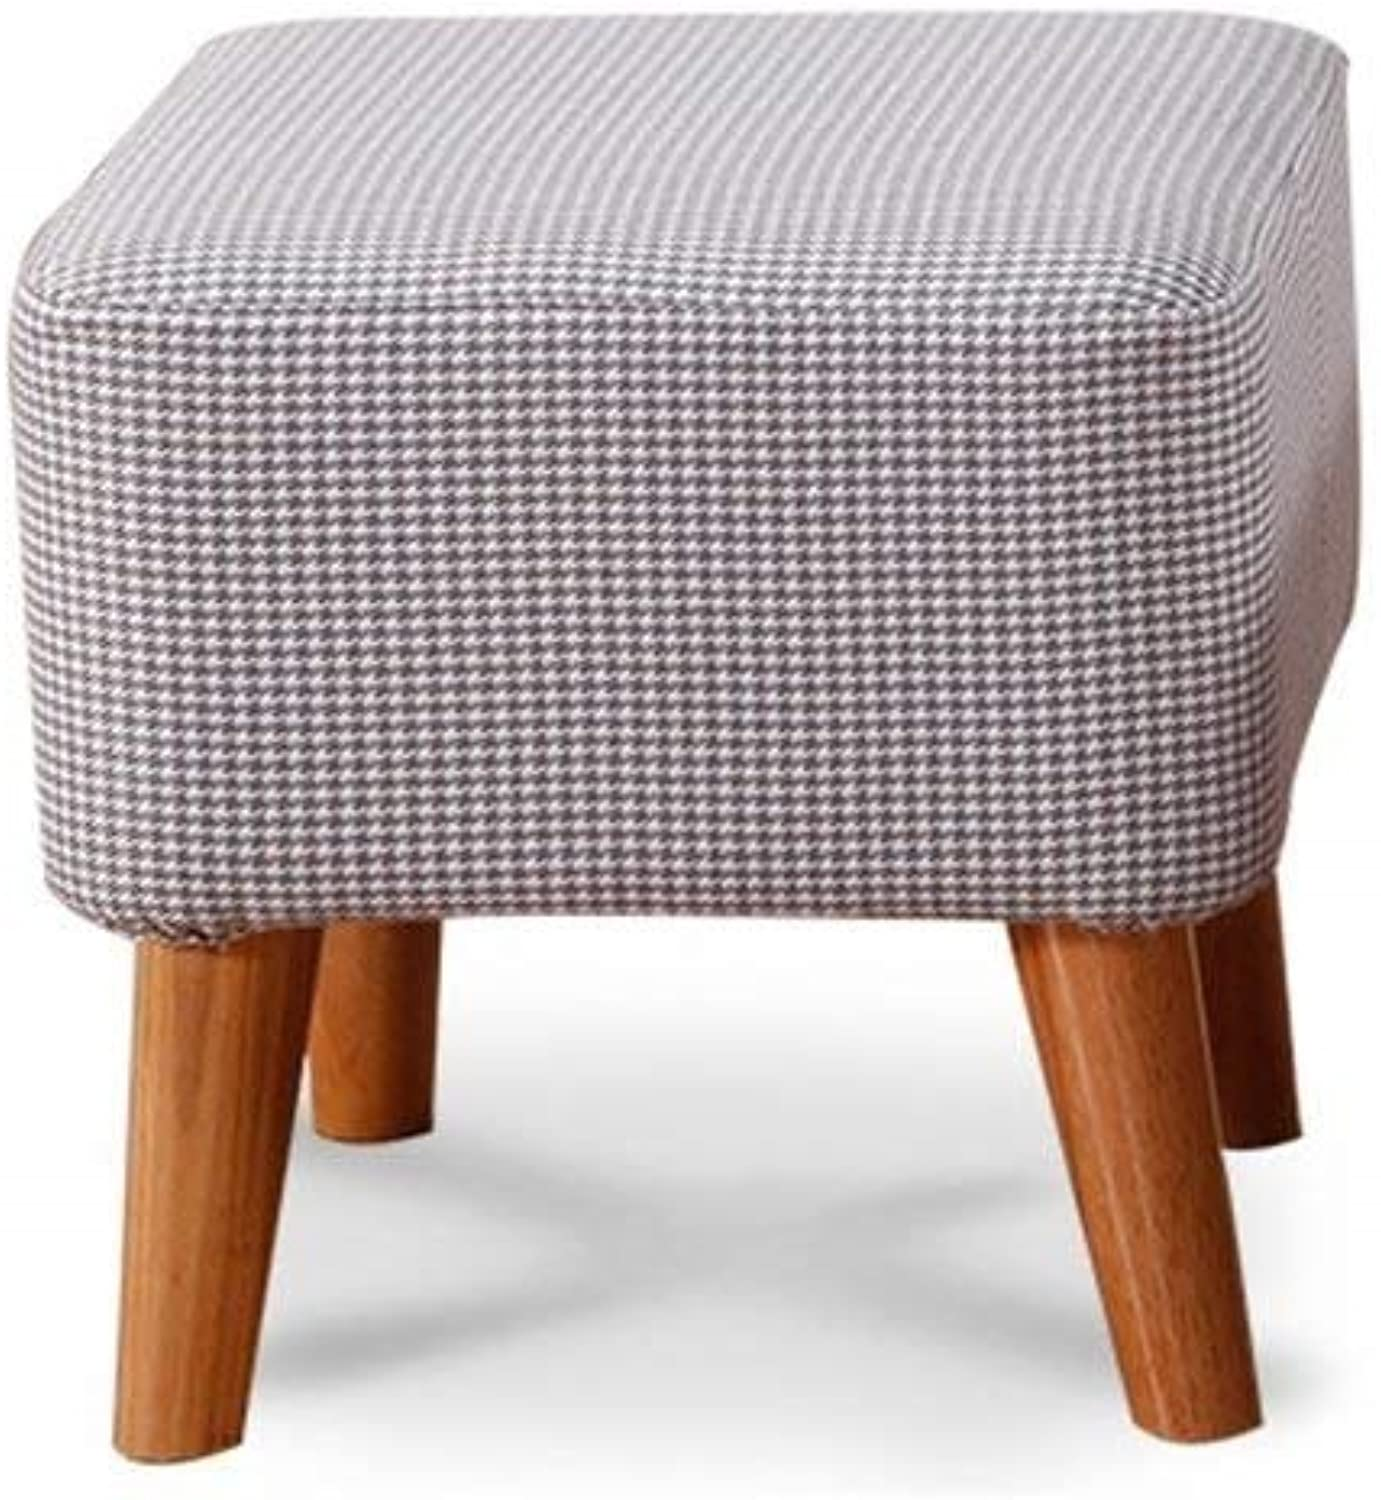 Modern Simple Sofa Stool Removable Washable shoes Bench Dressing Table Stool Solid Wood Bench Length 16×Width 16×High 16inch (color    7)